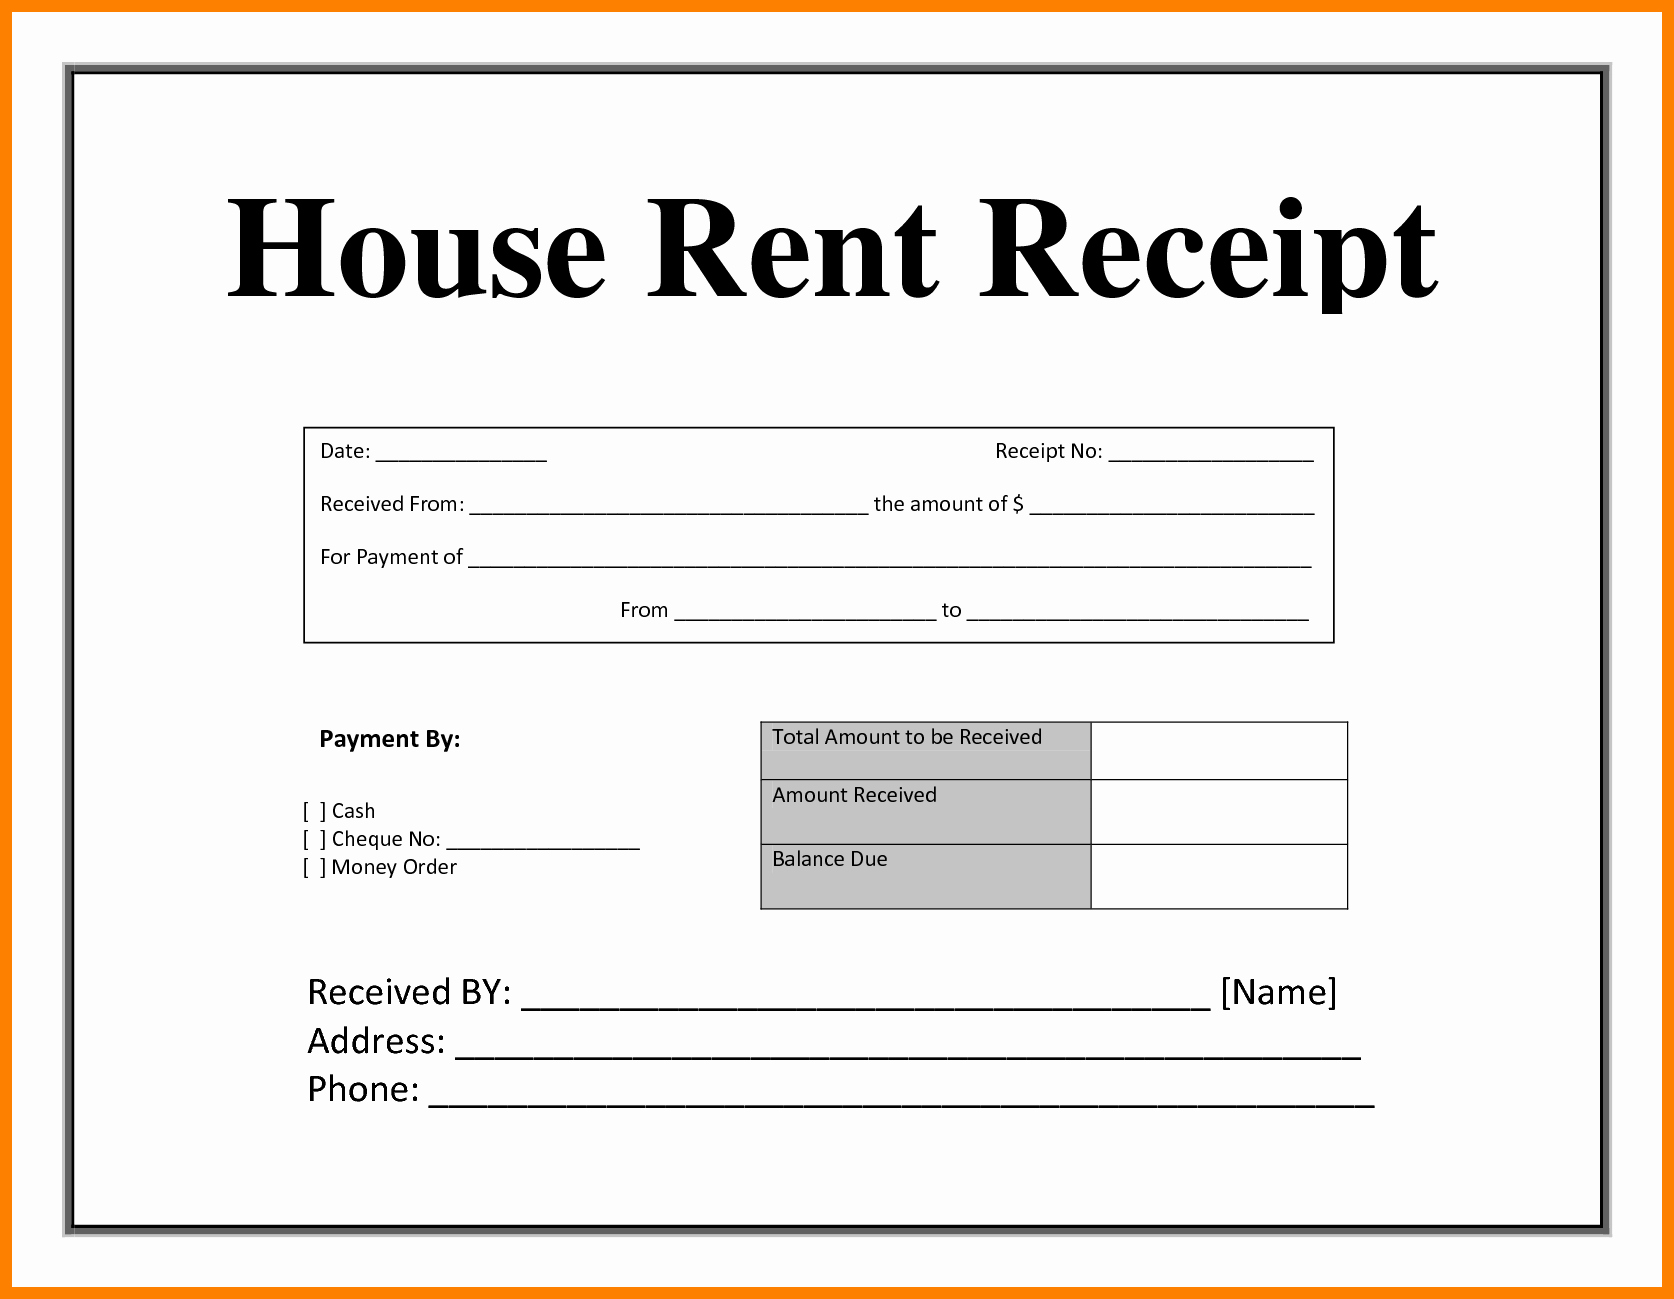 Rental Receipt Template Pdf Unique 15 Simple House Rent Receipt and Slip Samples to Inspire